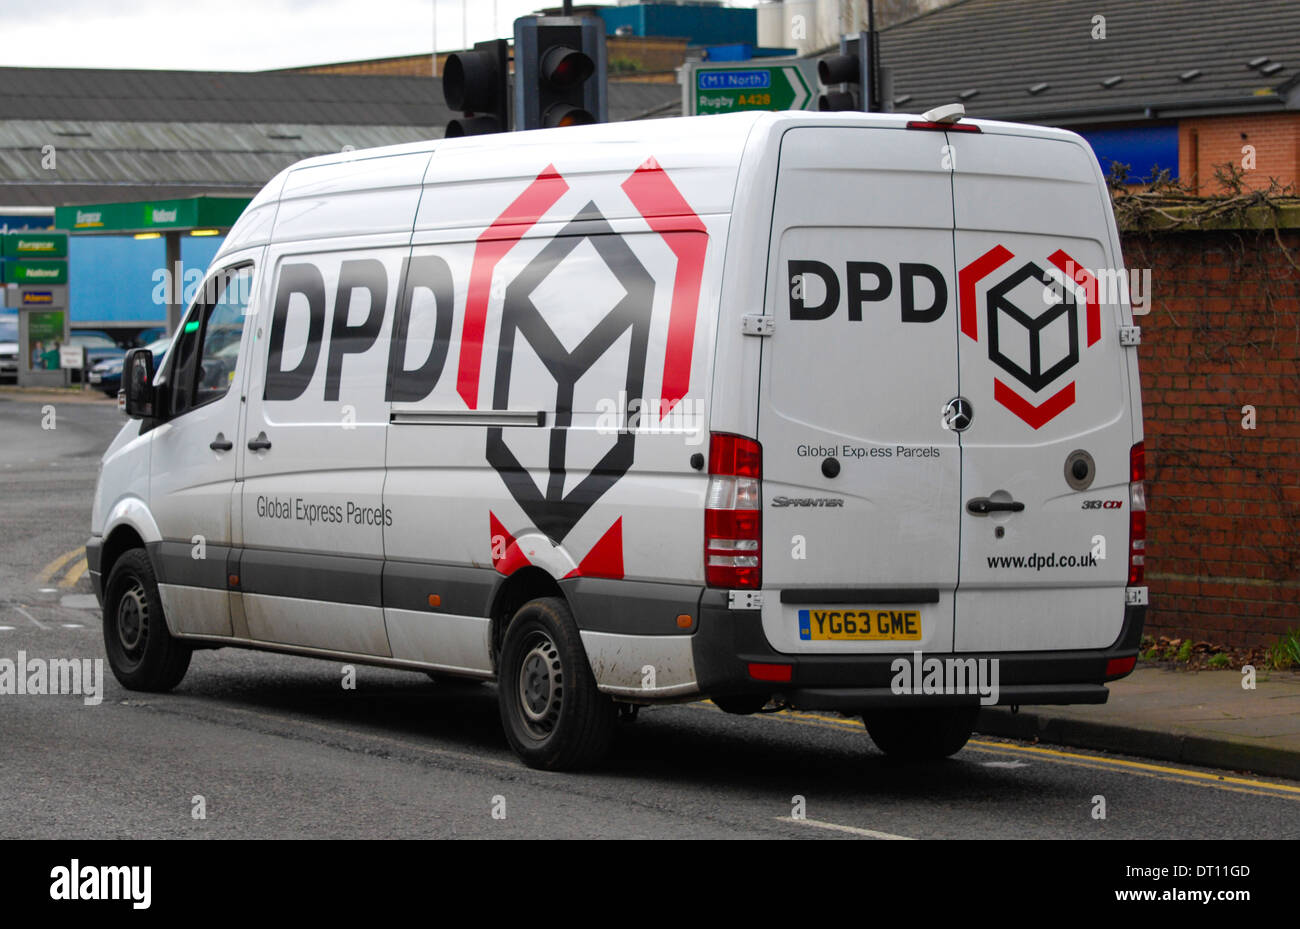 cbdedd86aa4557 Dpd Delivery Van Stock Photos   Dpd Delivery Van Stock Images - Alamy